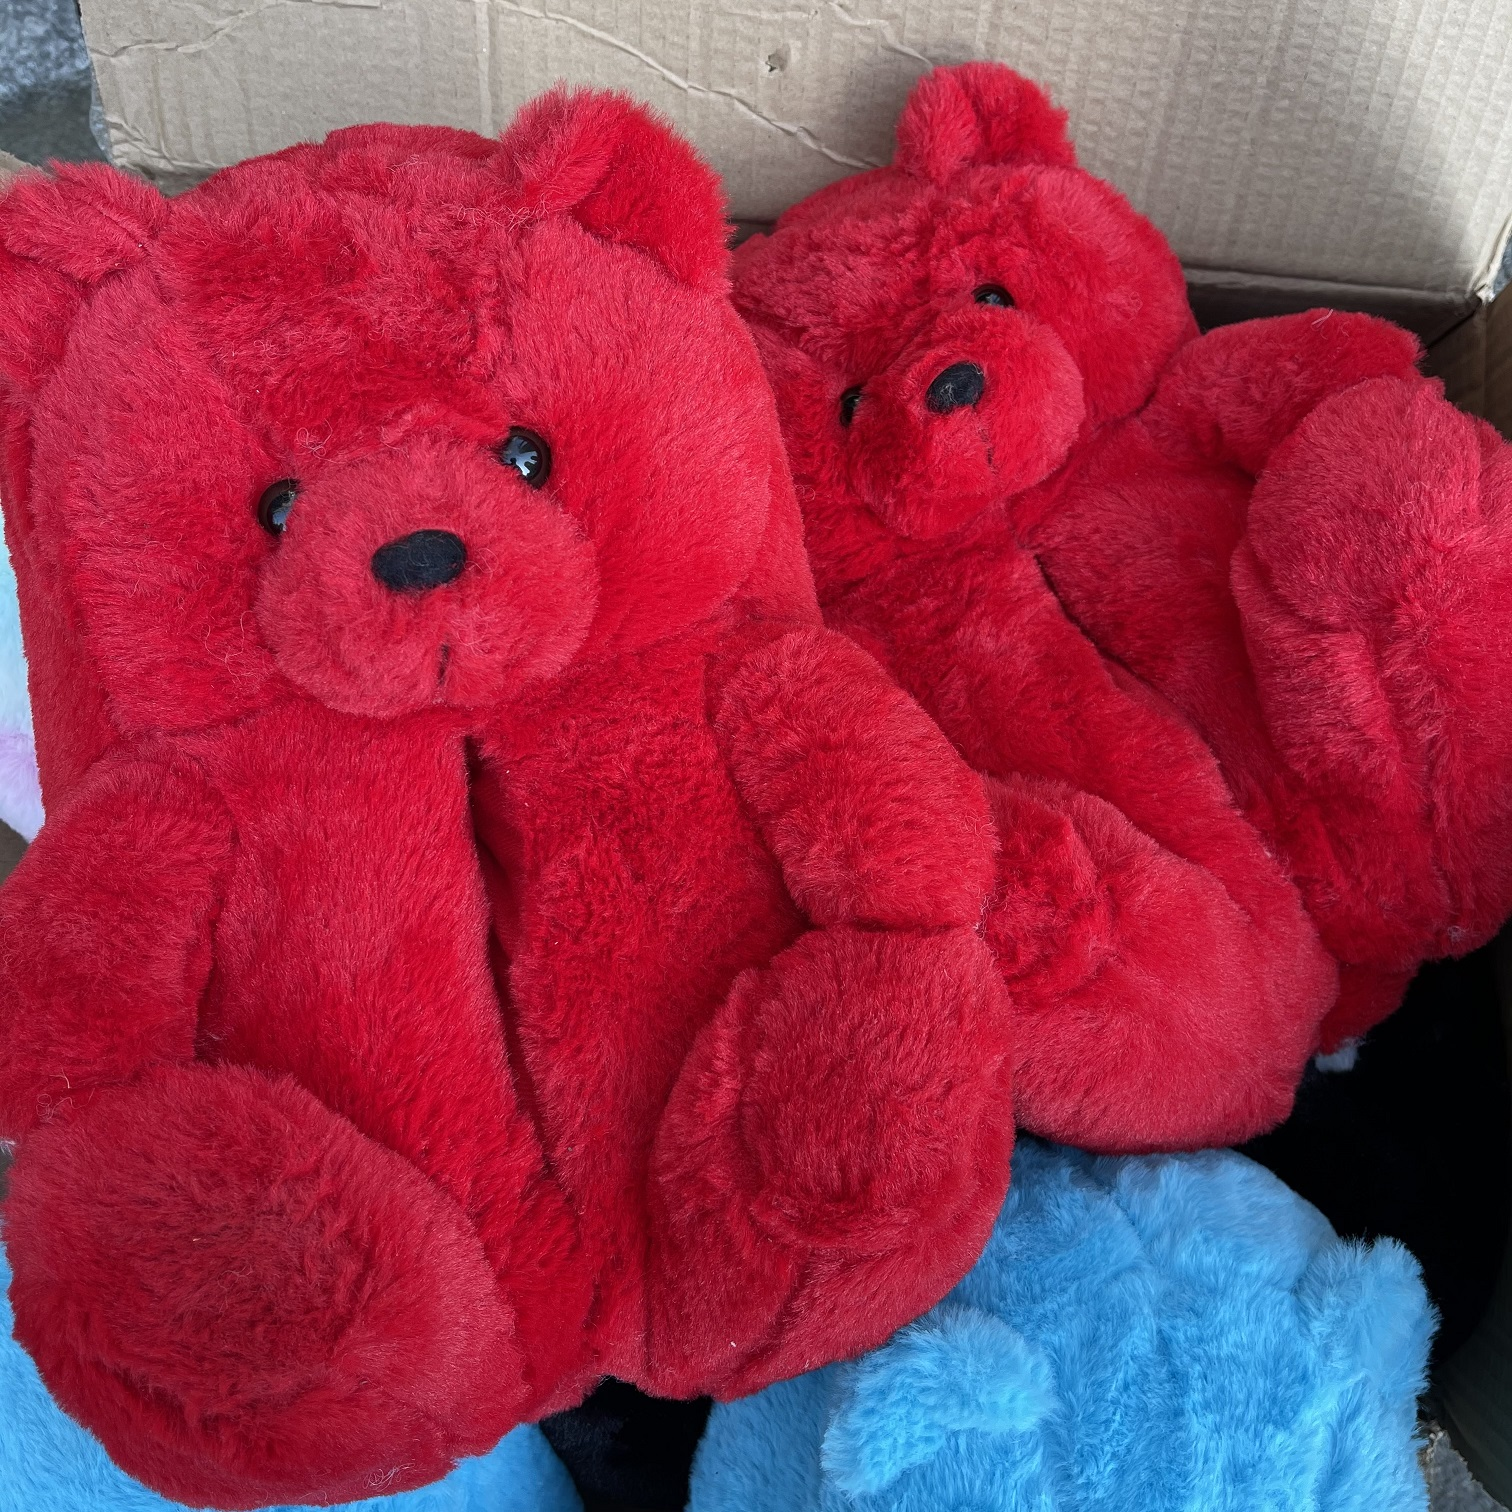 Factory direct sales Teddy Bear Slippers new arrivals fuzzy house slippers